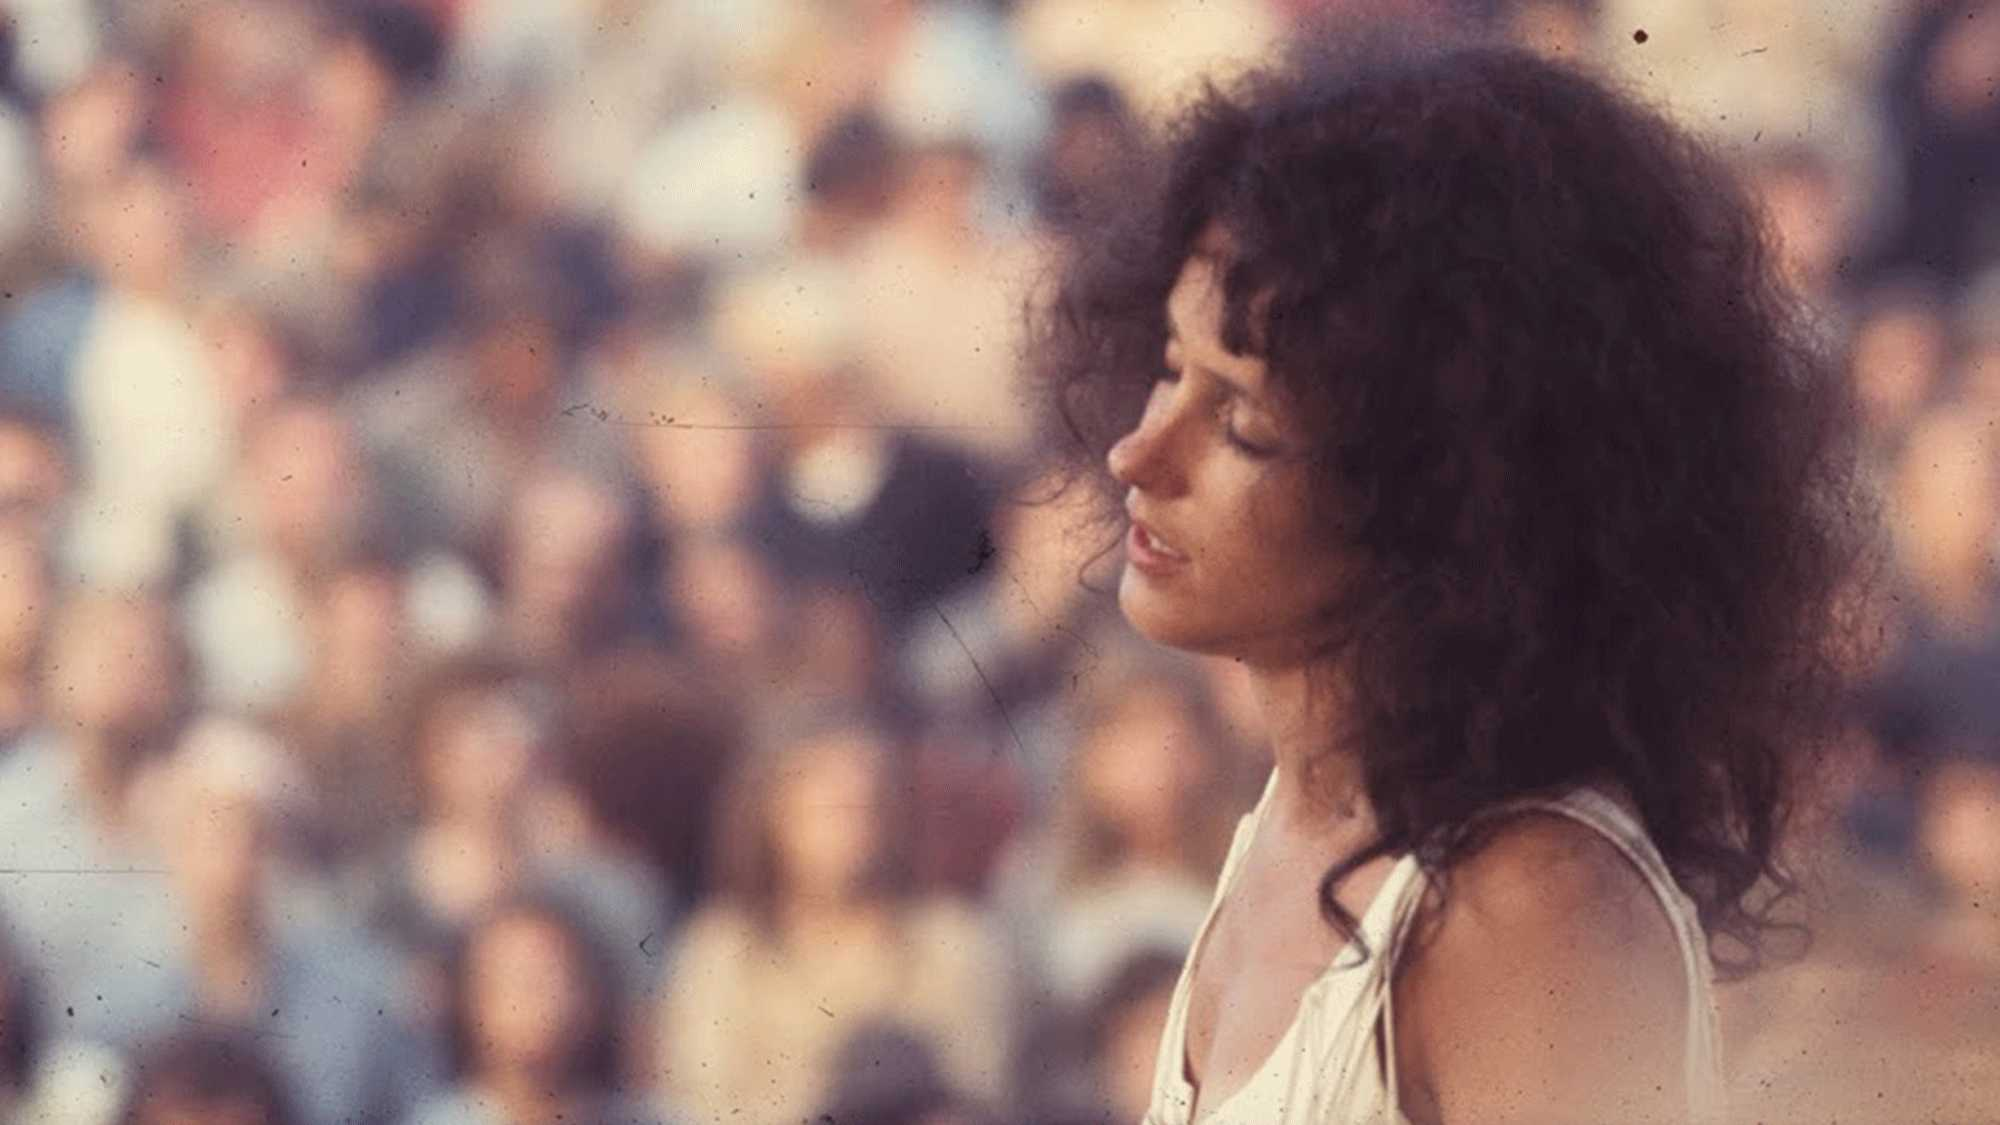 Woodstock: Three Days of Peace and Music (Director's Cut) (image 3)